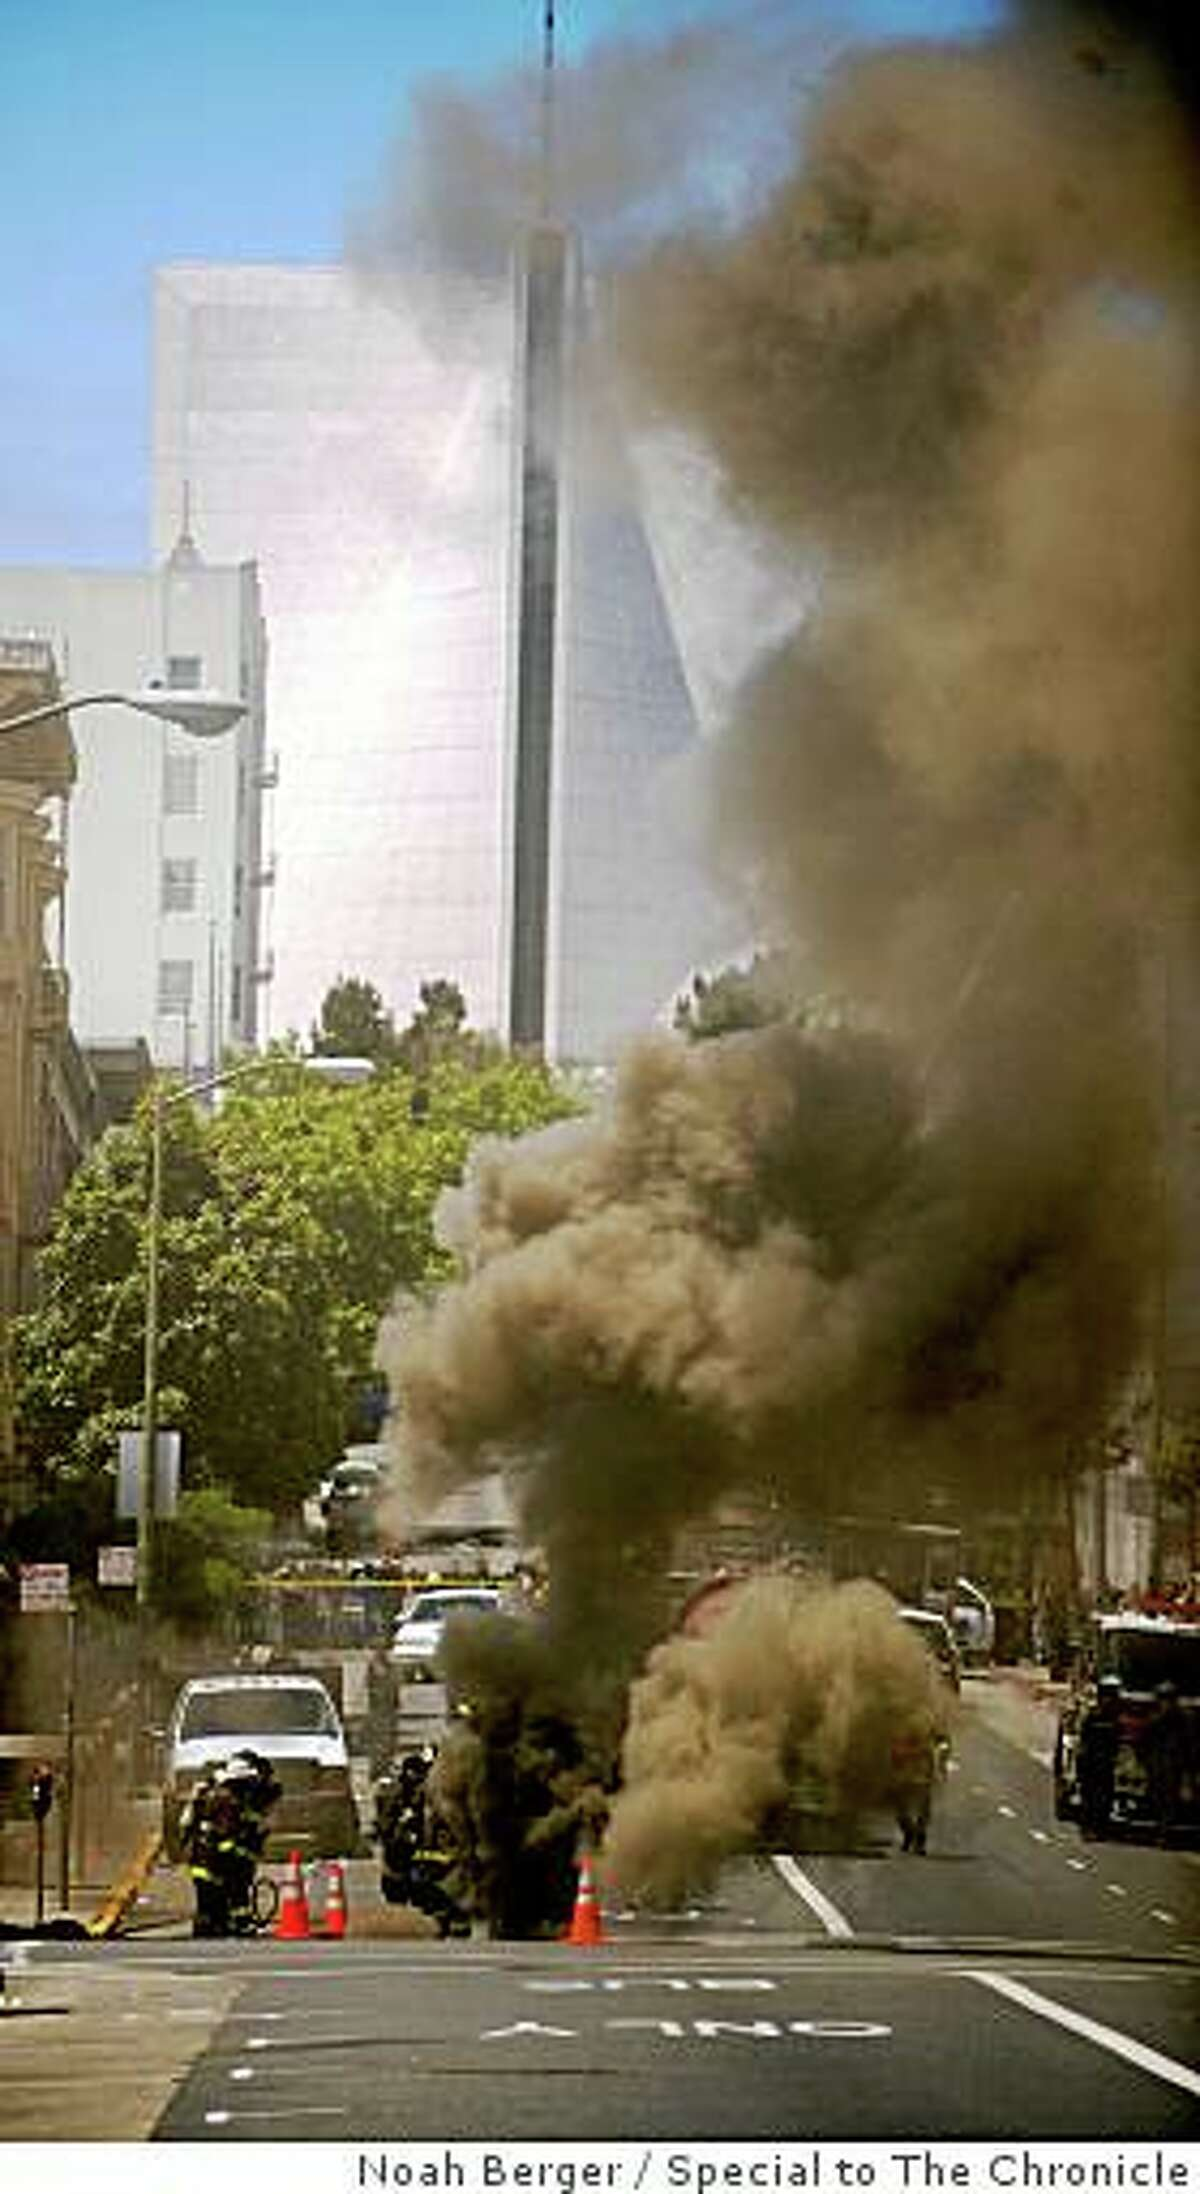 Firefighters fight an underground fire on O'Farrell Street in San Francisco on June 5, 2009. The underground explosion and fire in Tenderloin cut off power to 3,200 people, trapped some in elevators, and prompted a shelter-in-place order.